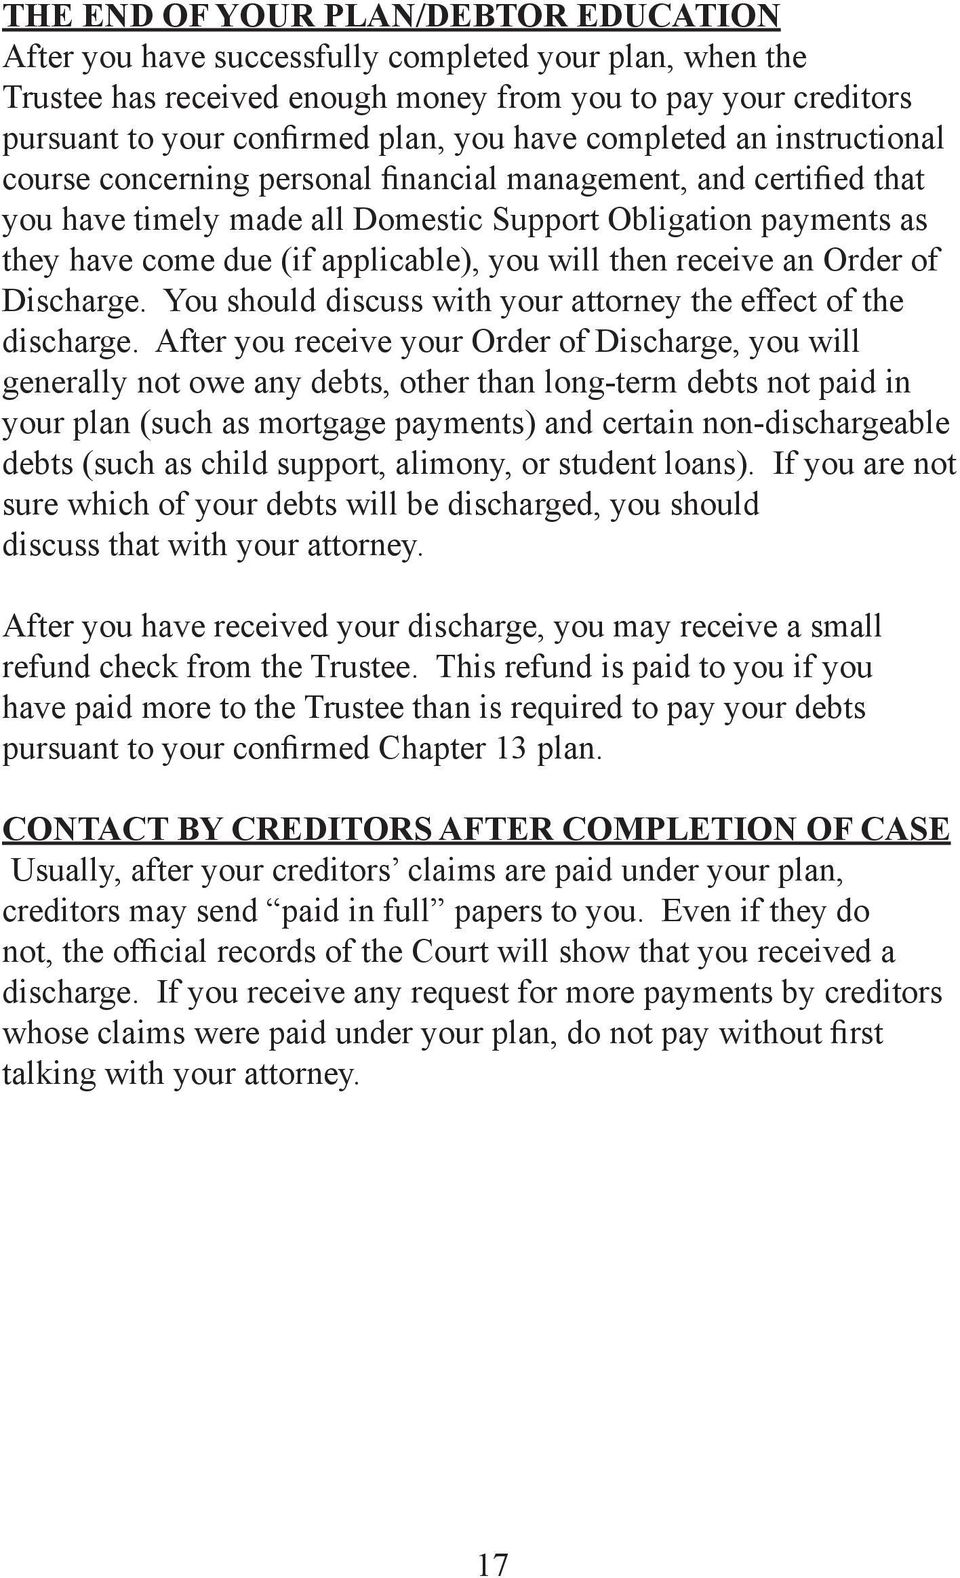 applicable), you will then receive an Order of Discharge. You should discuss with your attorney the effect of the discharge.